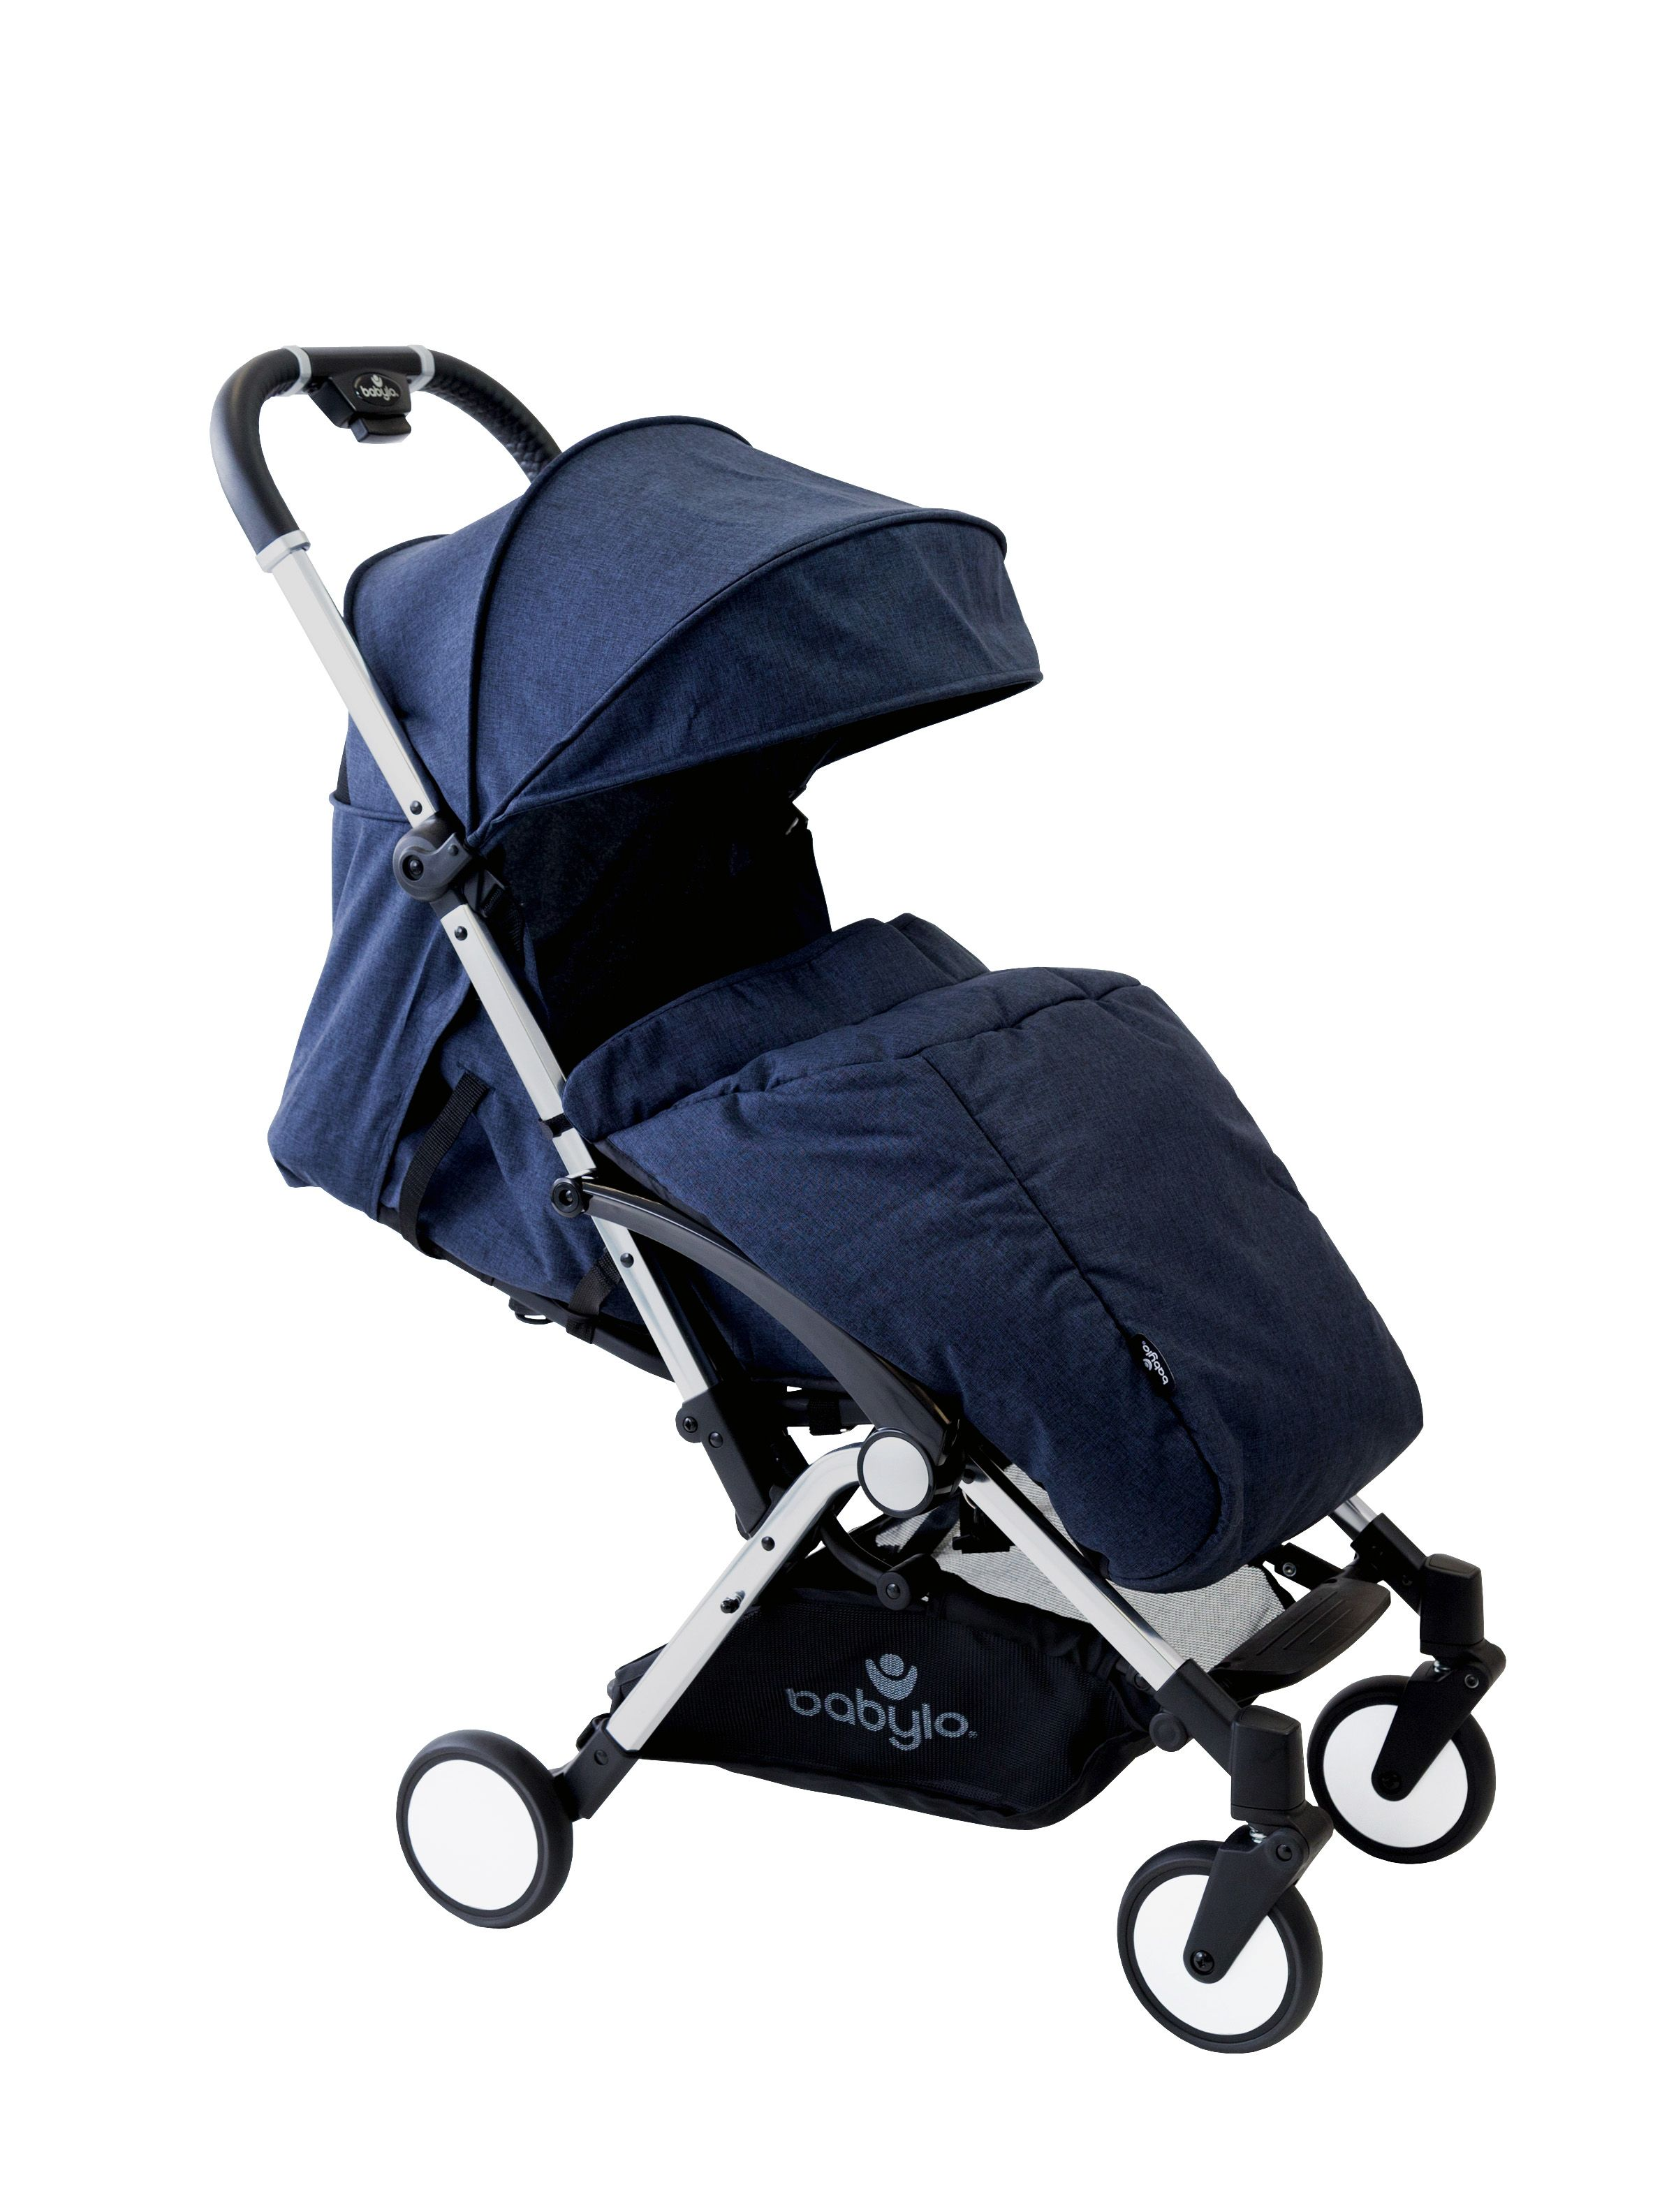 aebcb889532 Exclusive Babylo Scat Stroller - Denim